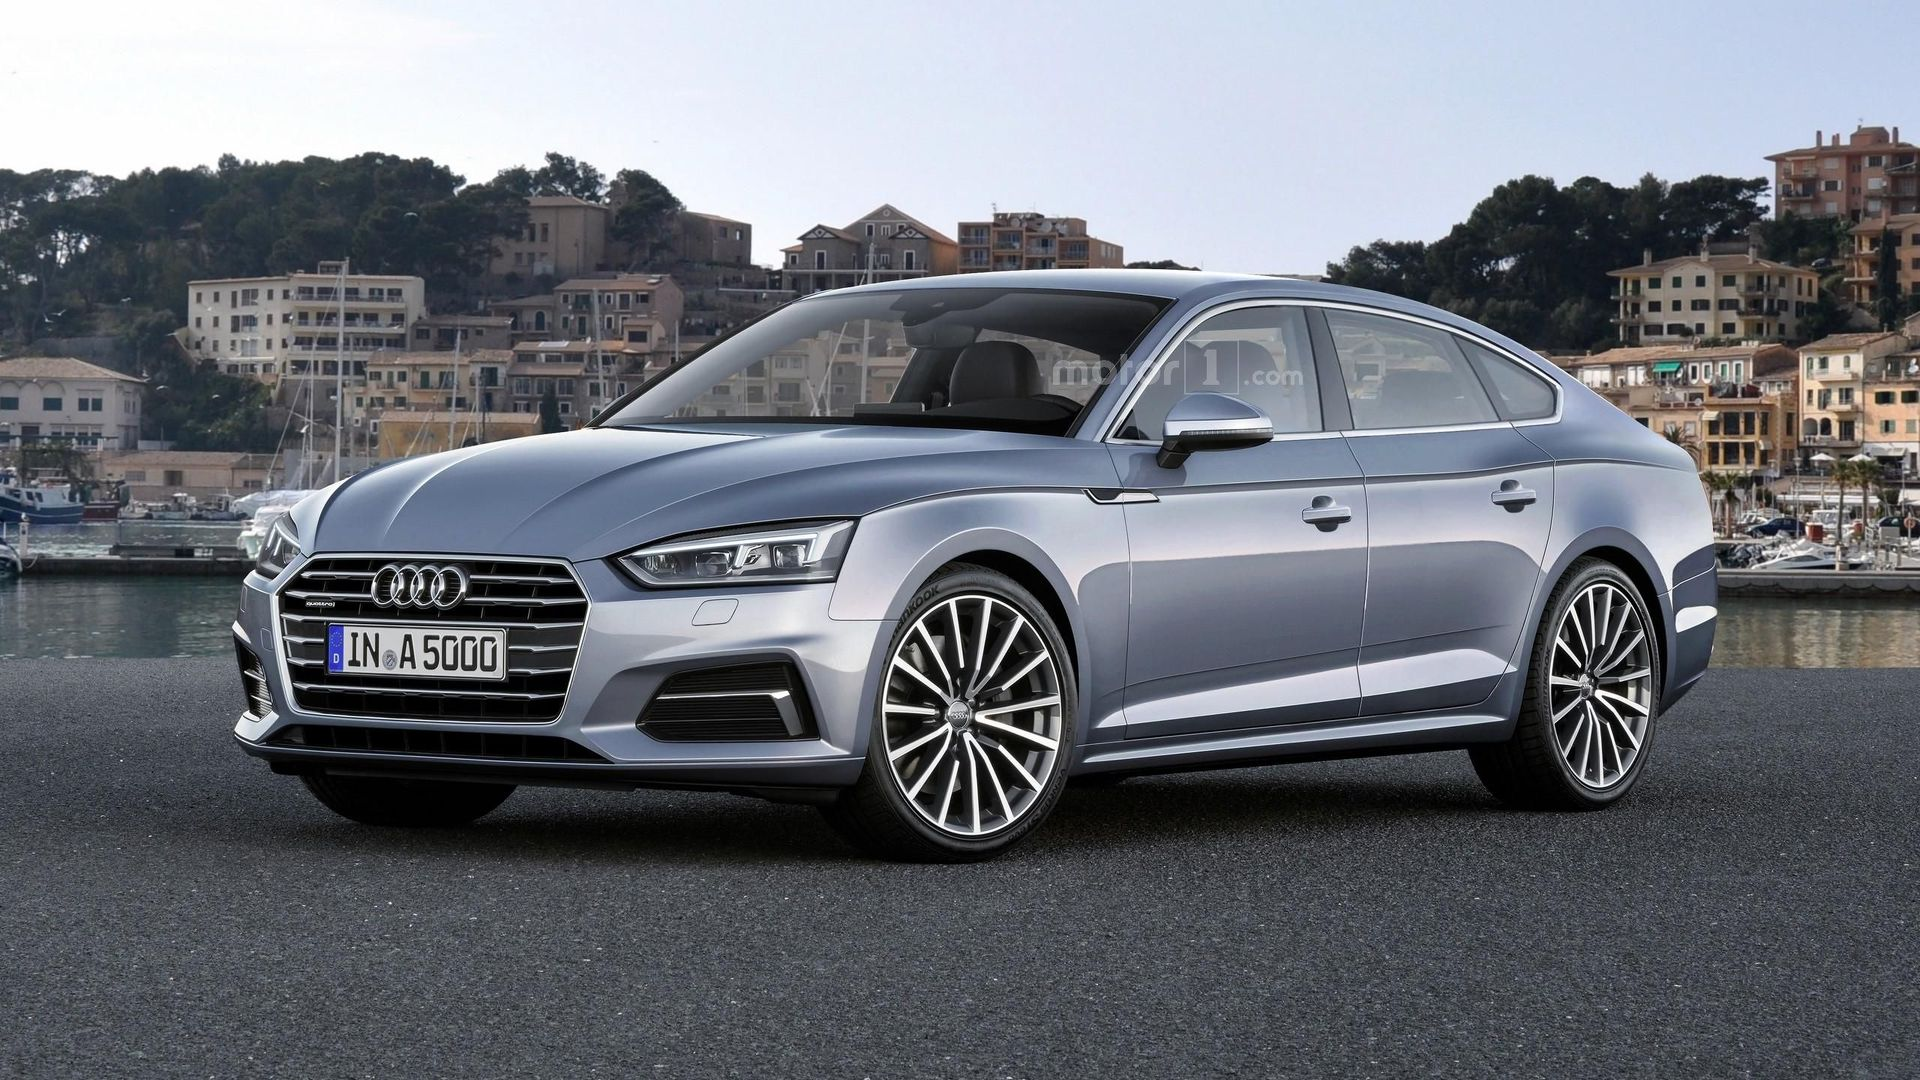 2018 Audi A5 Sportback Rendered on model a car door